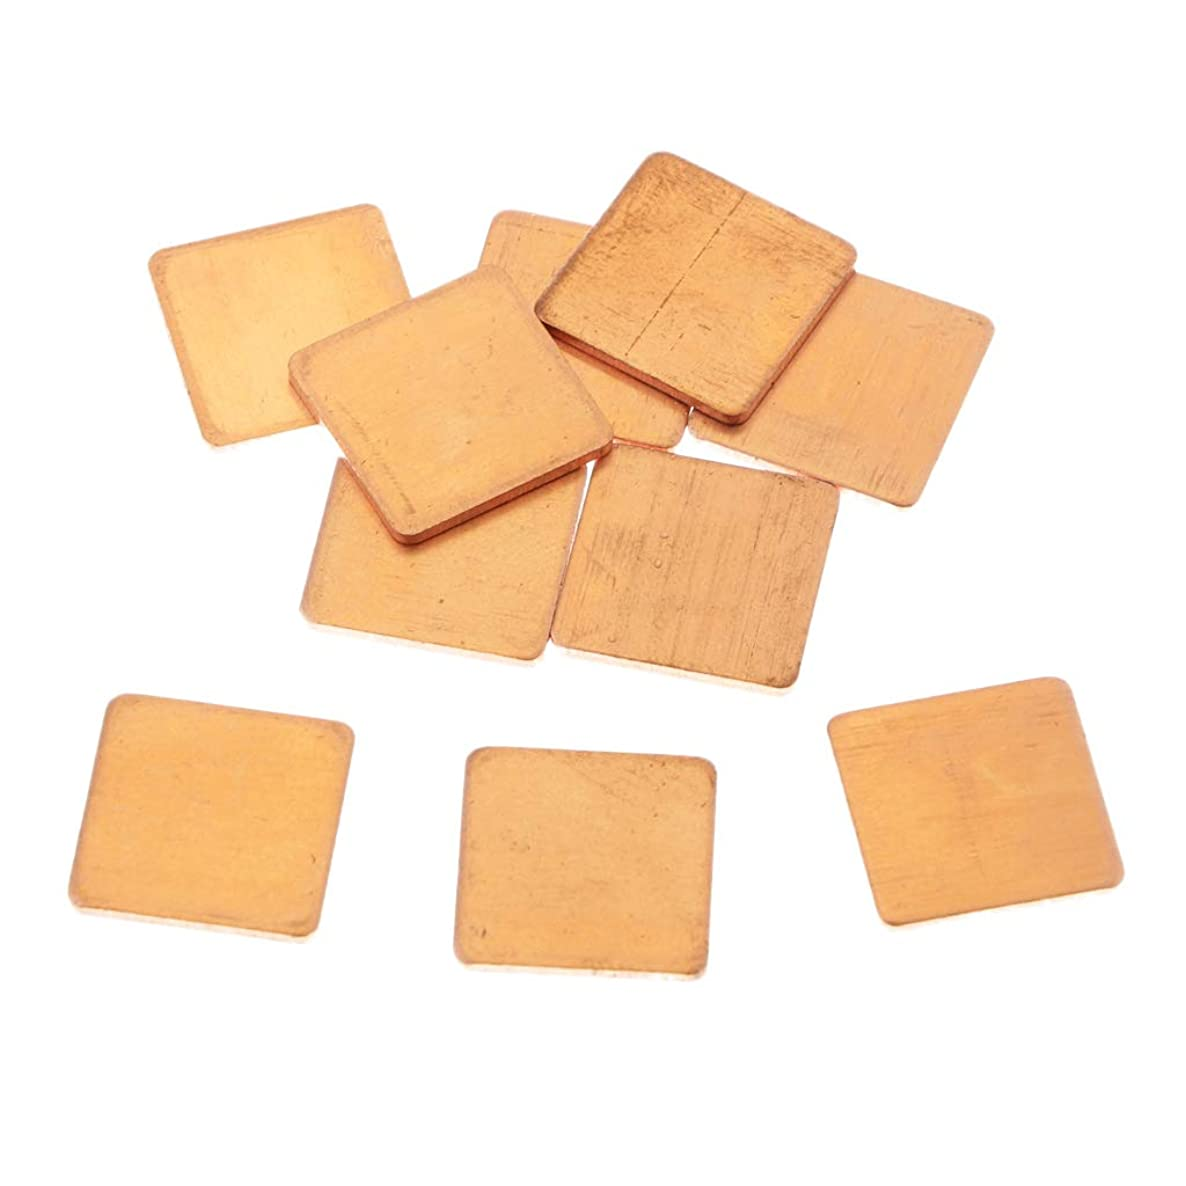 Homyl 10 Lot IC Chipset GPU CPU Heatsink Thermal Pad Set Kit 0.6x0.6x0.05inch, Copper, for PC Computer Component